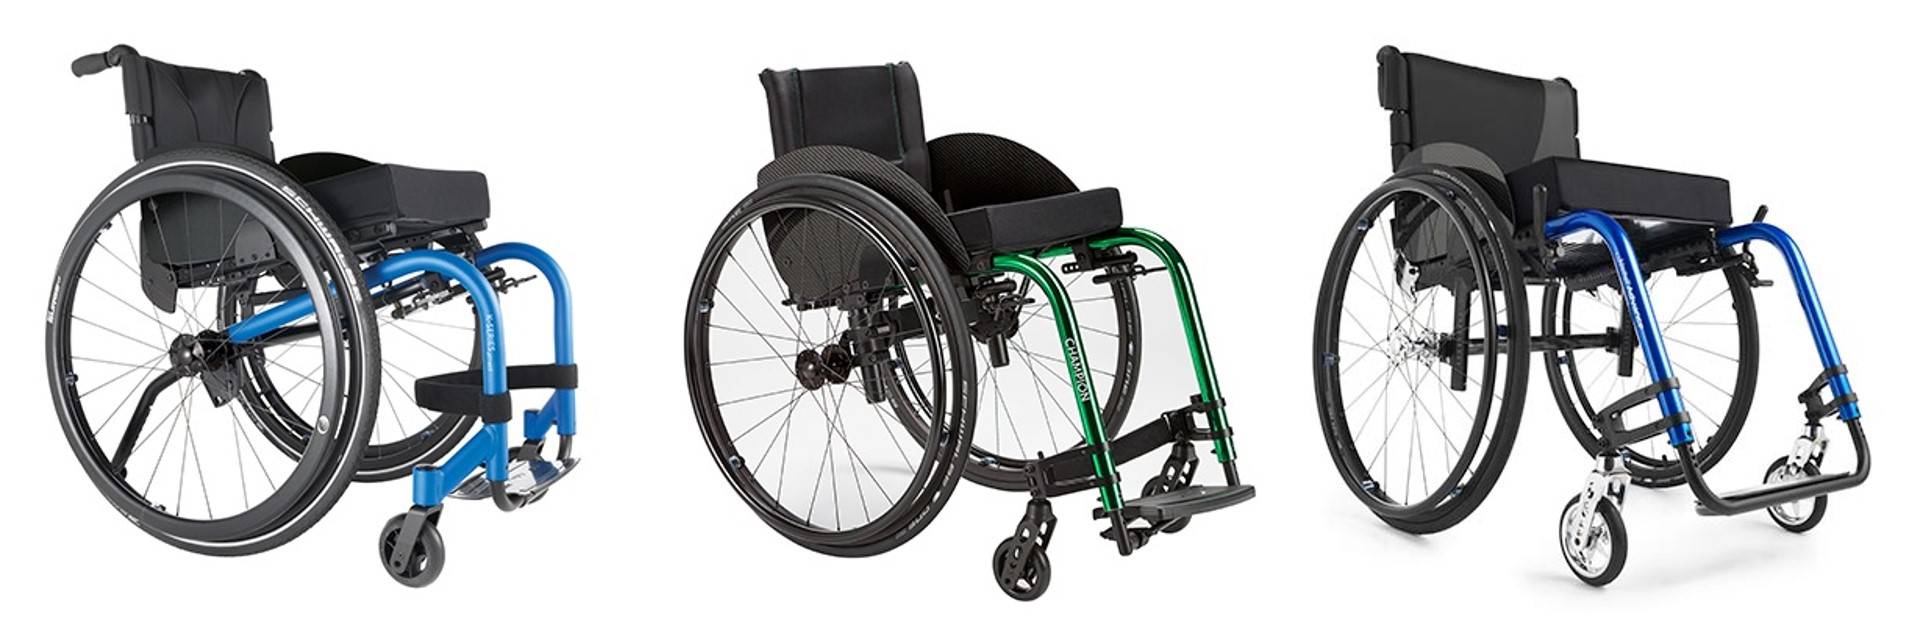 now available kuschall k-series attract, champion and advance wheelchairs